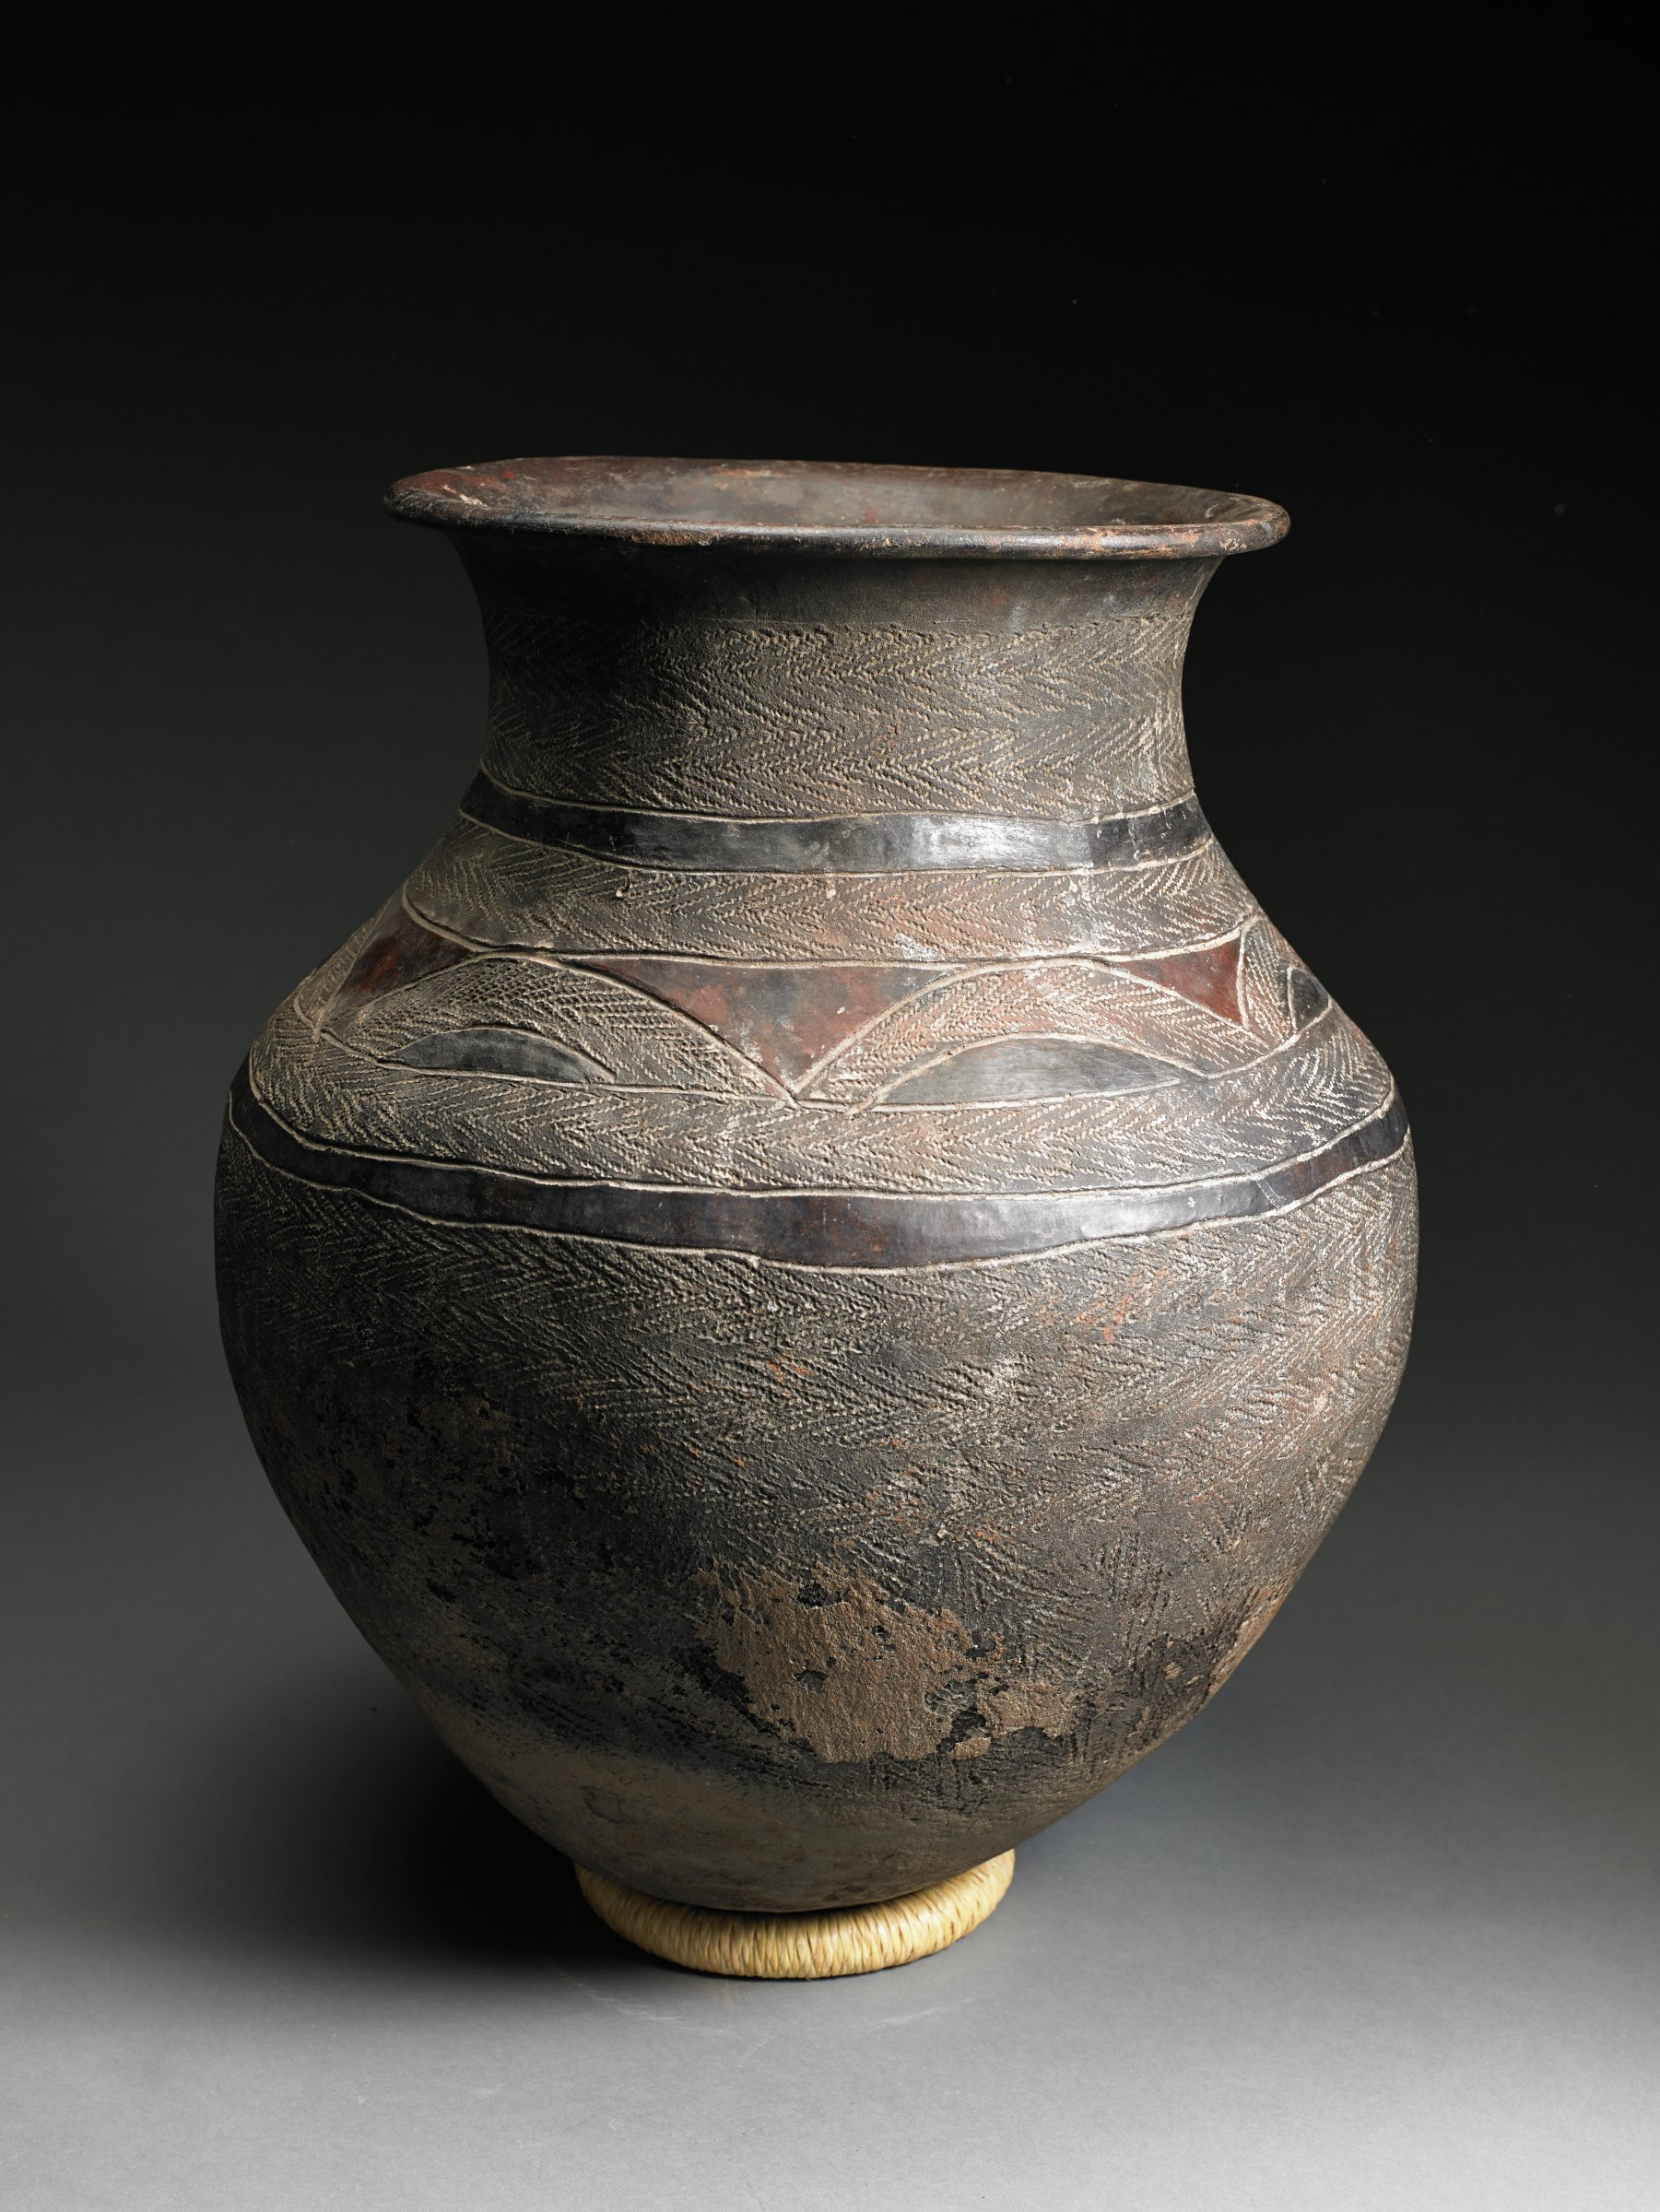 Dark brown vessel has round body and curves inward at neck topped by flaring rim. Surface has overall matte texture from roulette; two narrow glossy bands define shoulder, which has glossy triangles and half-ovals.